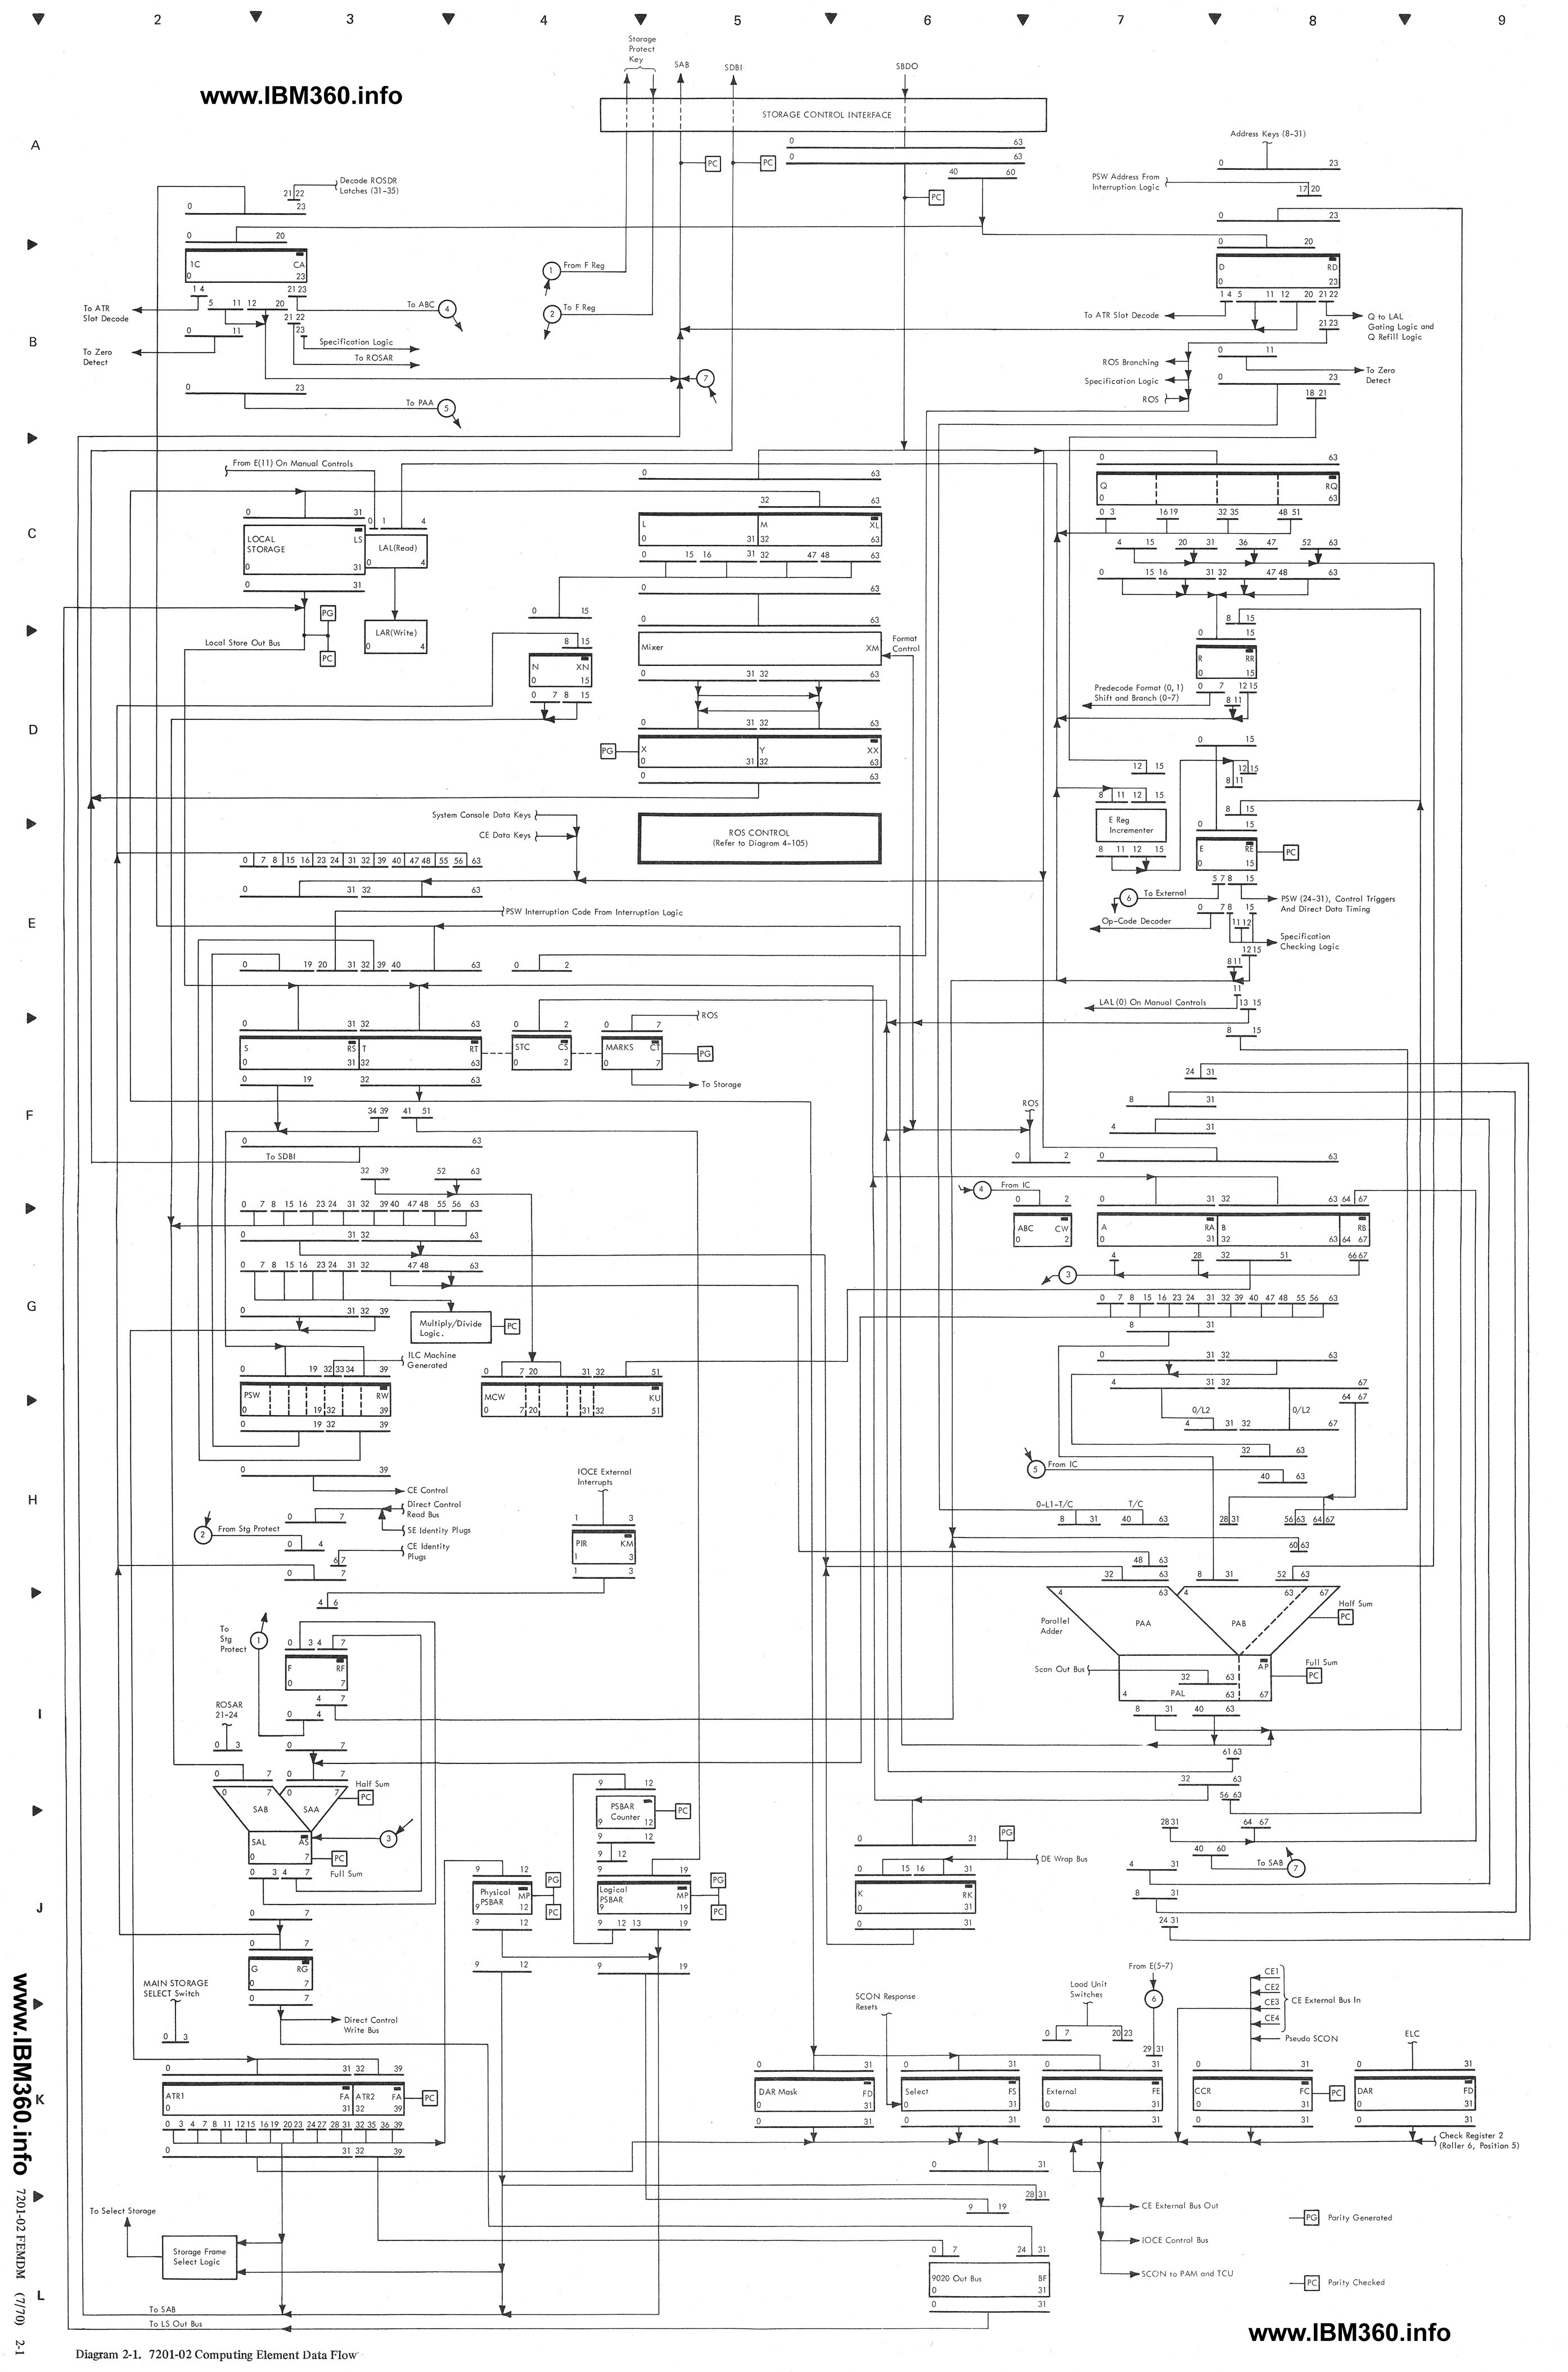 Ibm S 360 Schematic Diagram2 Channels Same As Below This Is Diagram 5 305 Ss Instruction Decimal Multiply And 306 Divide From The 7201 02 Femdm